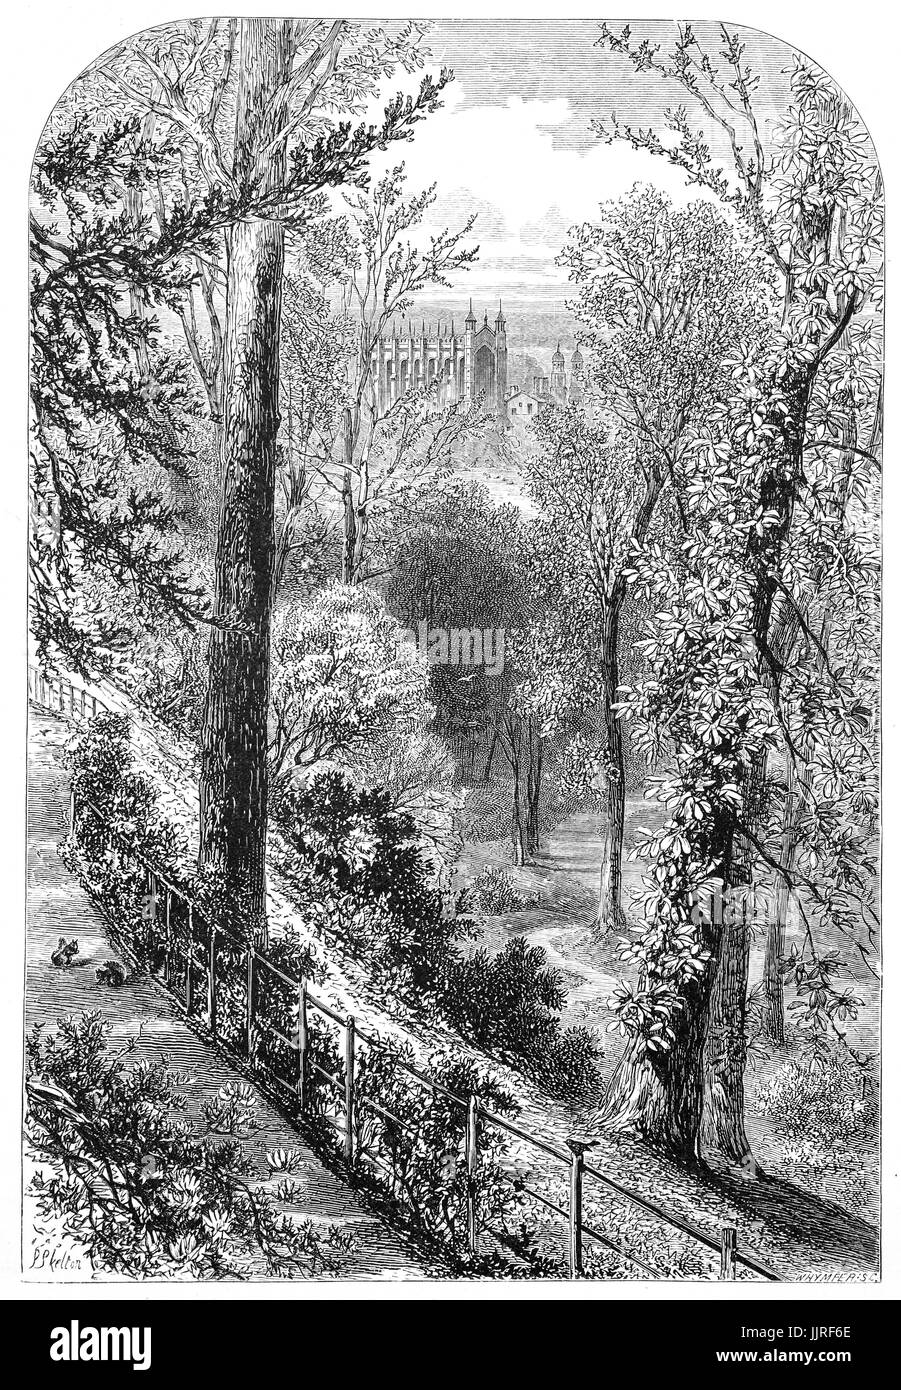 1870: The Slopes: Windsor Castle is placed upon the top of a steep chalk cliff which rises almost abruptly from - Stock Image